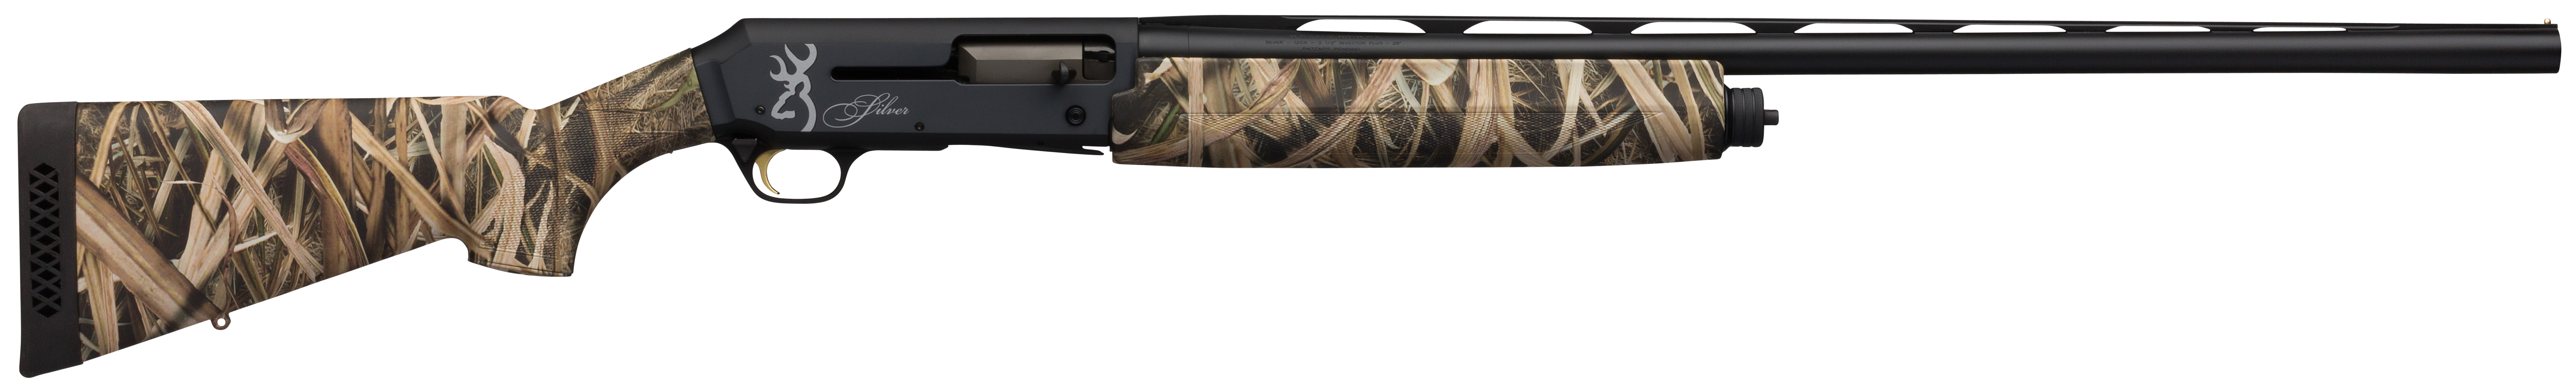 Browning Silver Field Semi-Auto Shotgun 3.5'' 12 Gauge 26'' Aluminum Alloy - Synthetic - Mossy Oak Shadow Grass Blades